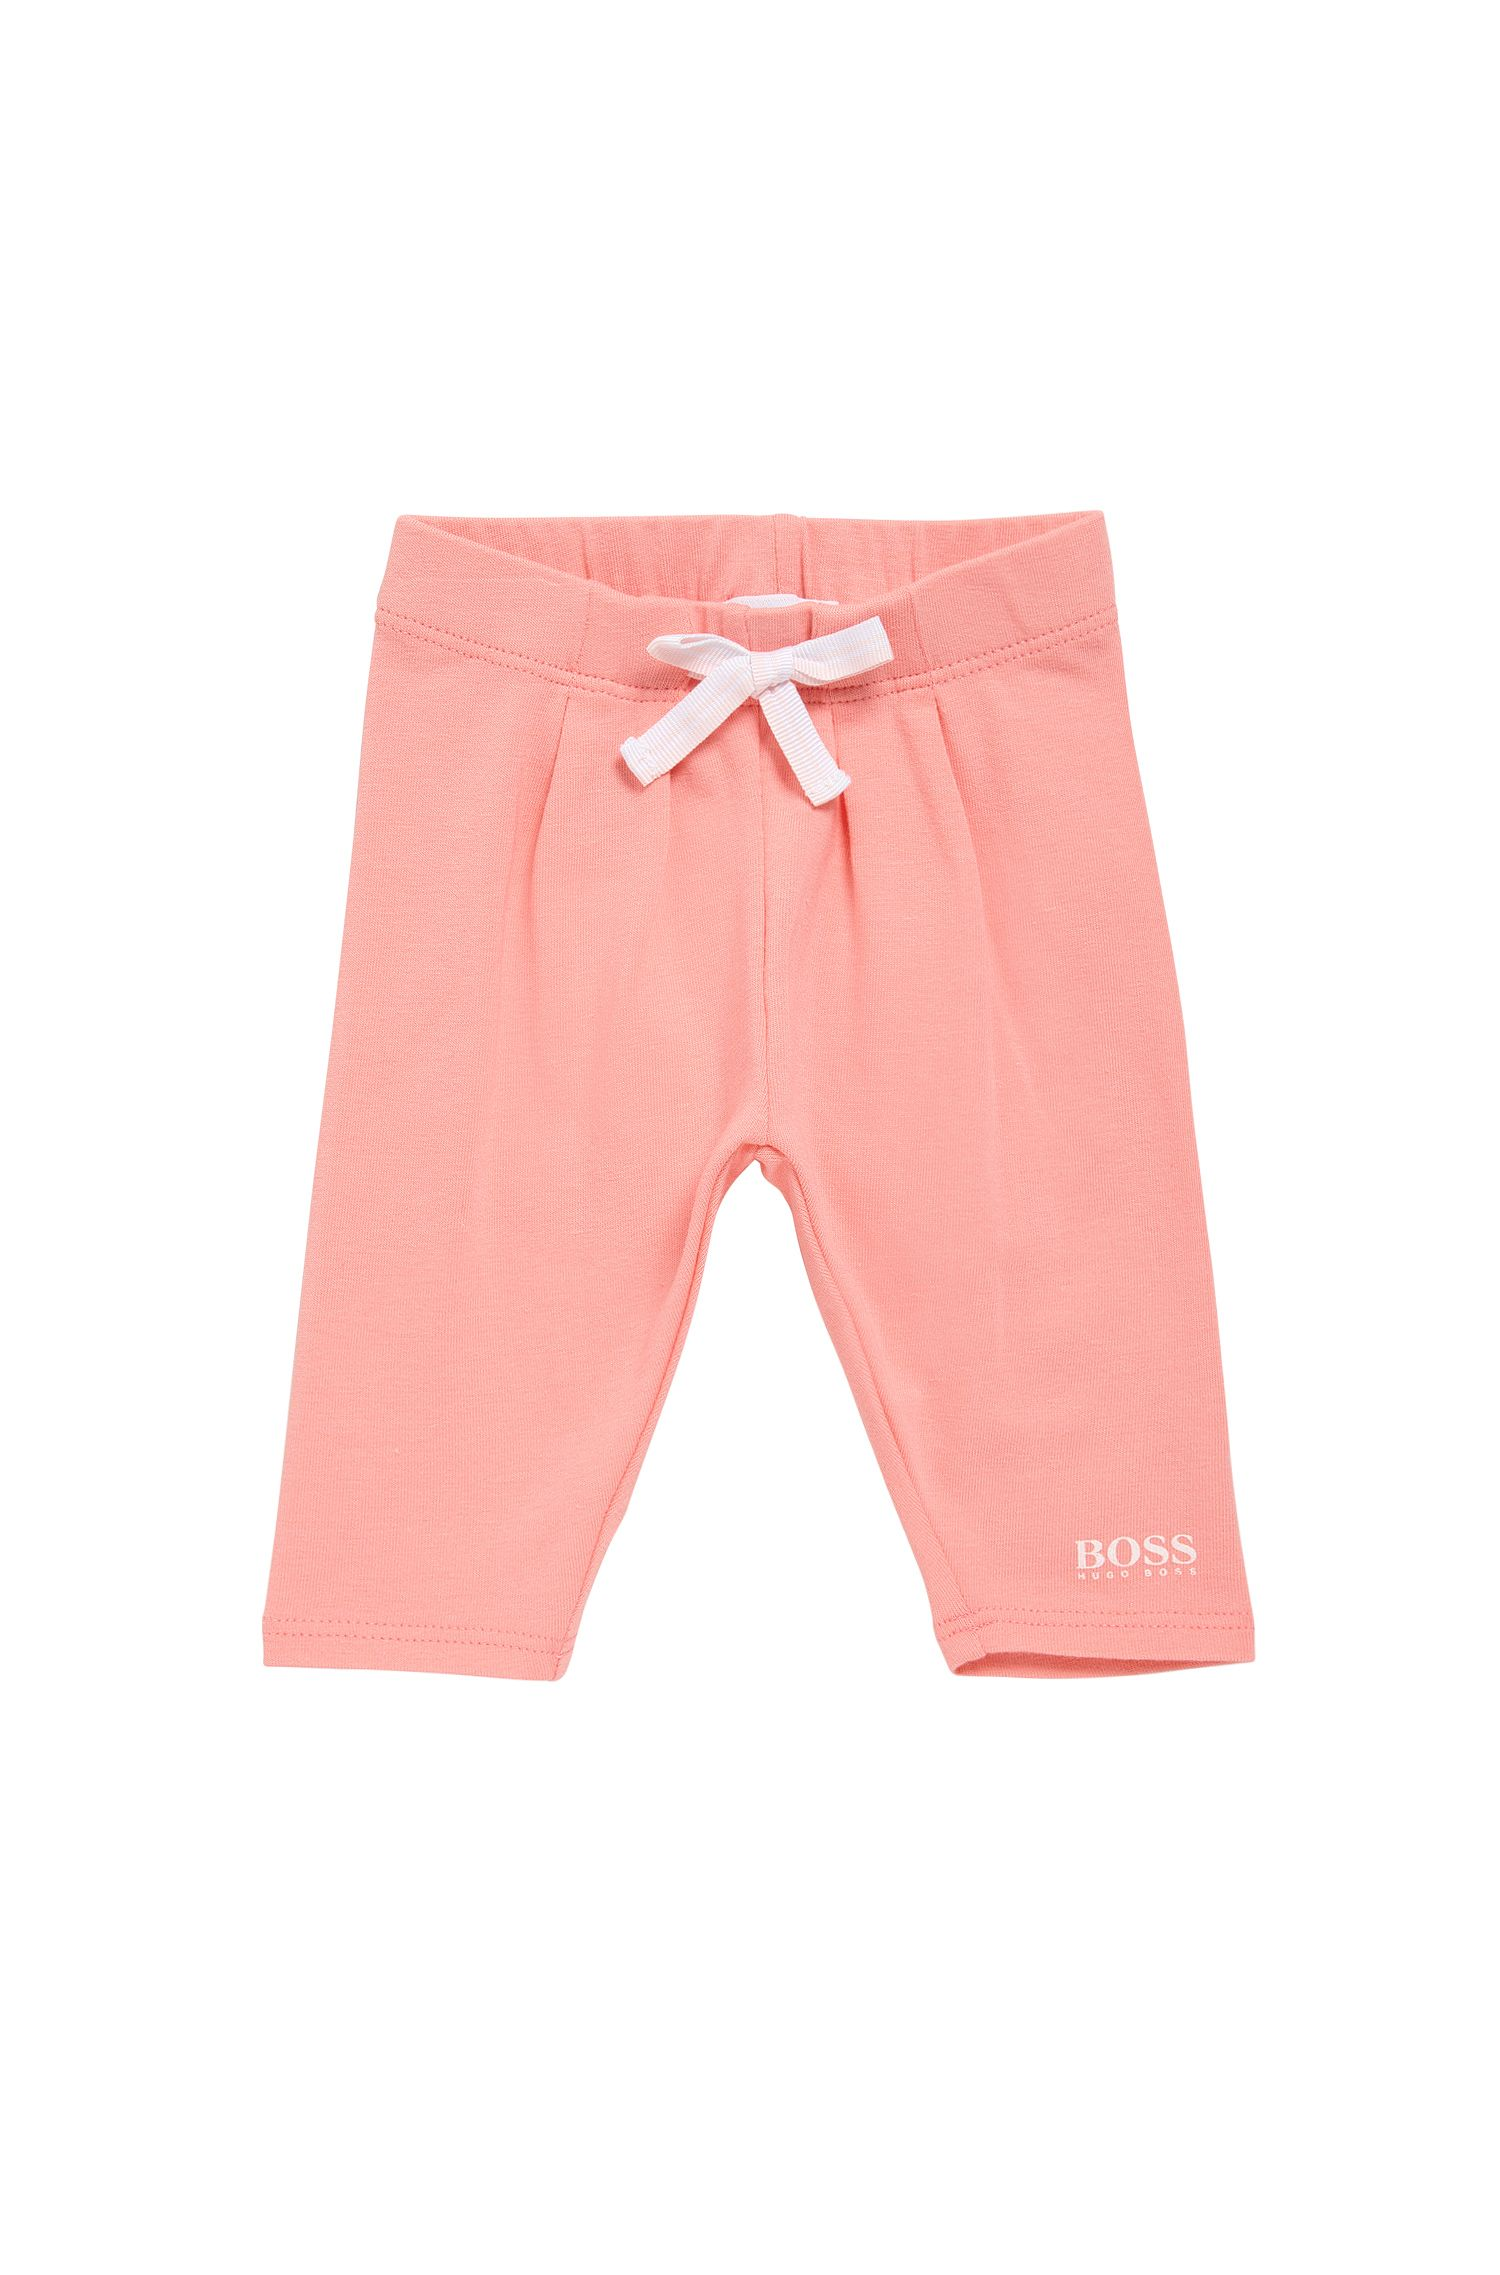 Newborn trousers in stretch cotton with bow detail: 'J94165'